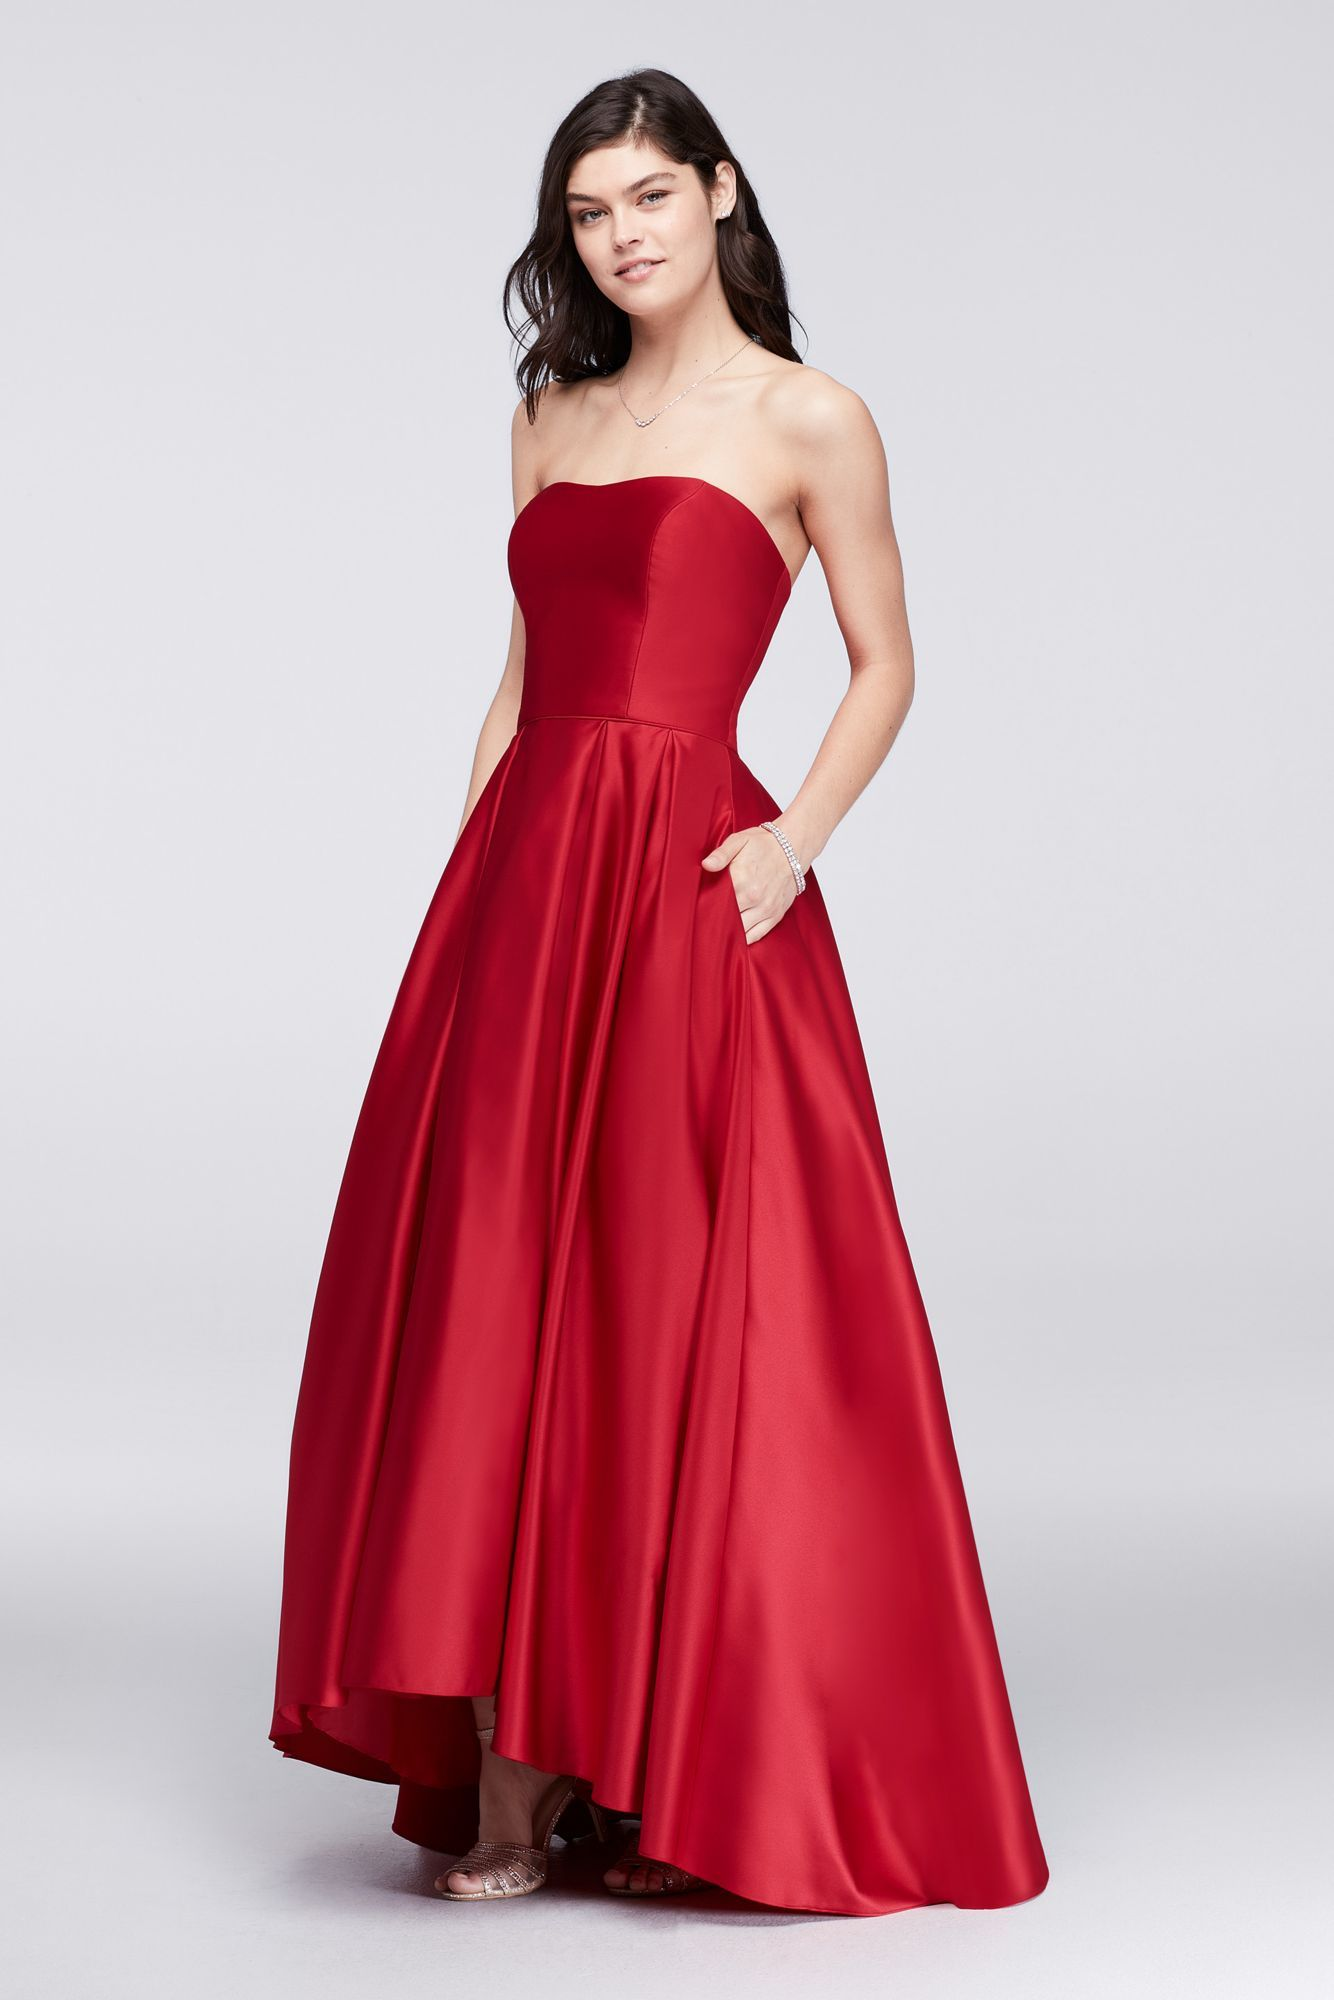 A18224 Style Betsy & Adam Fashion High-Low A-line Satin Ball Gown ...